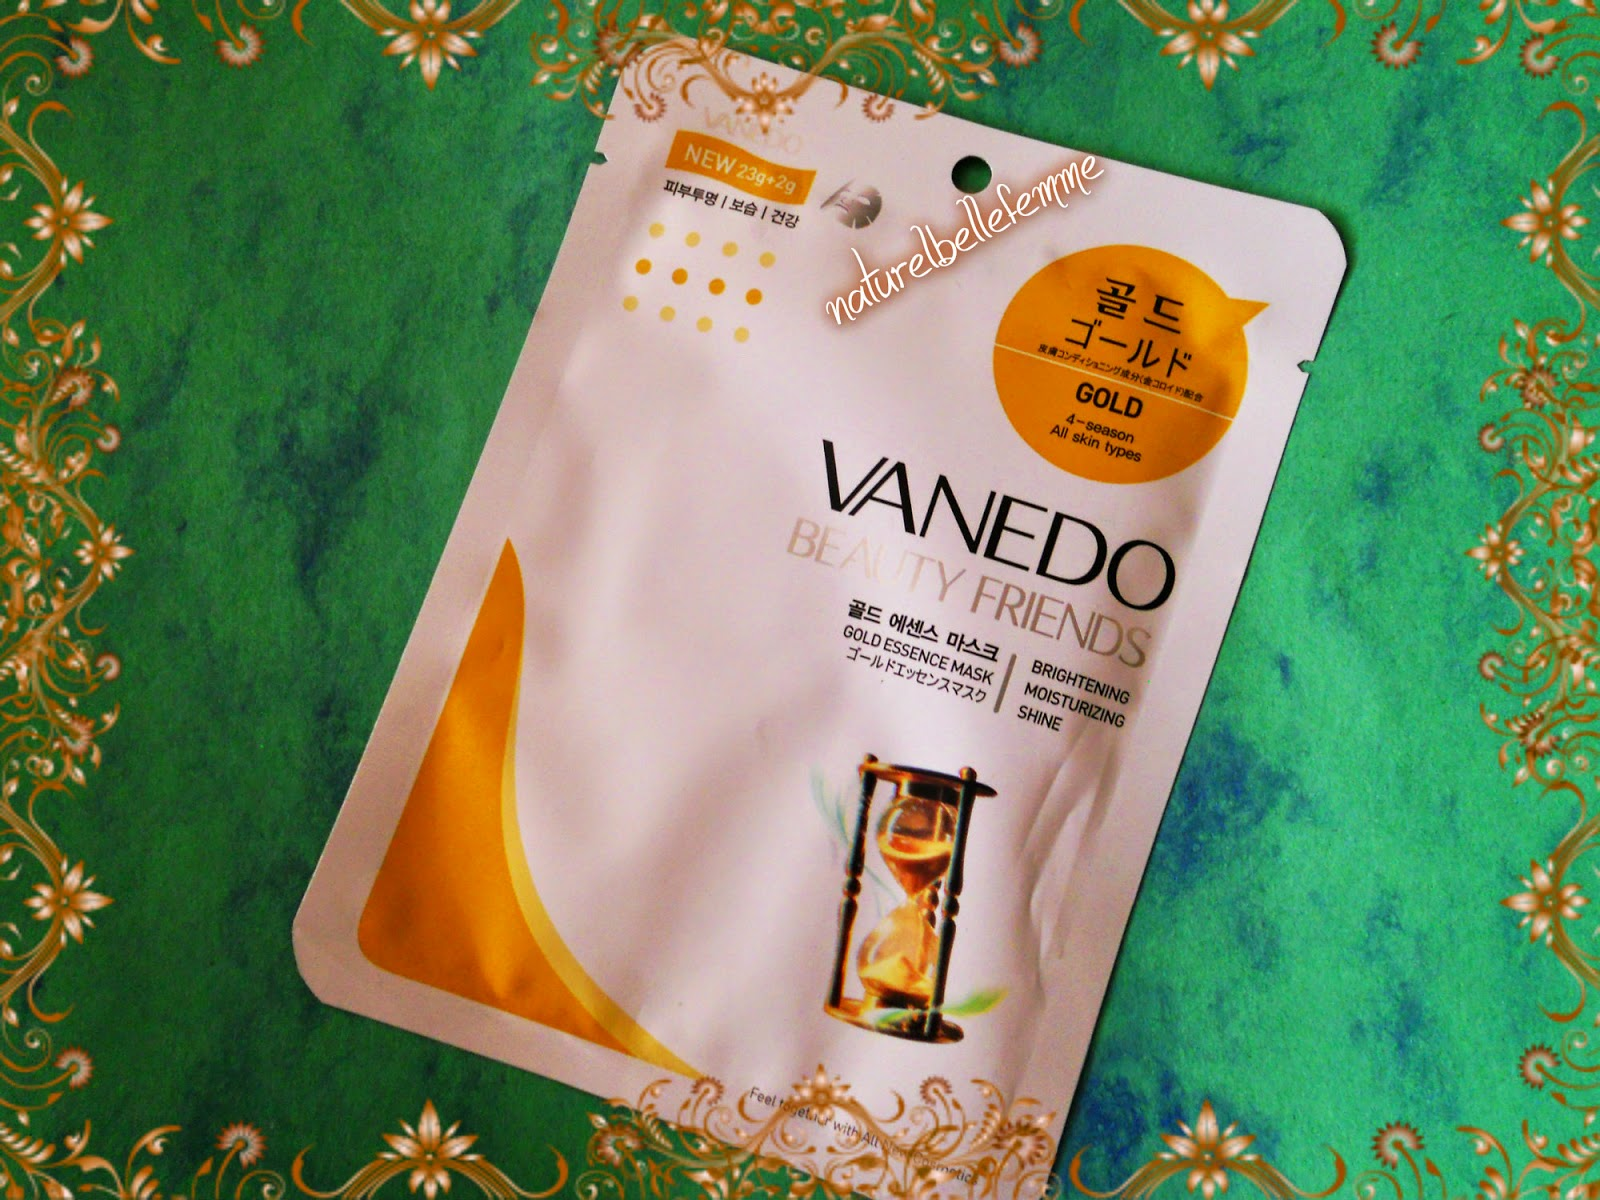 Vanedo Gold sheet mask